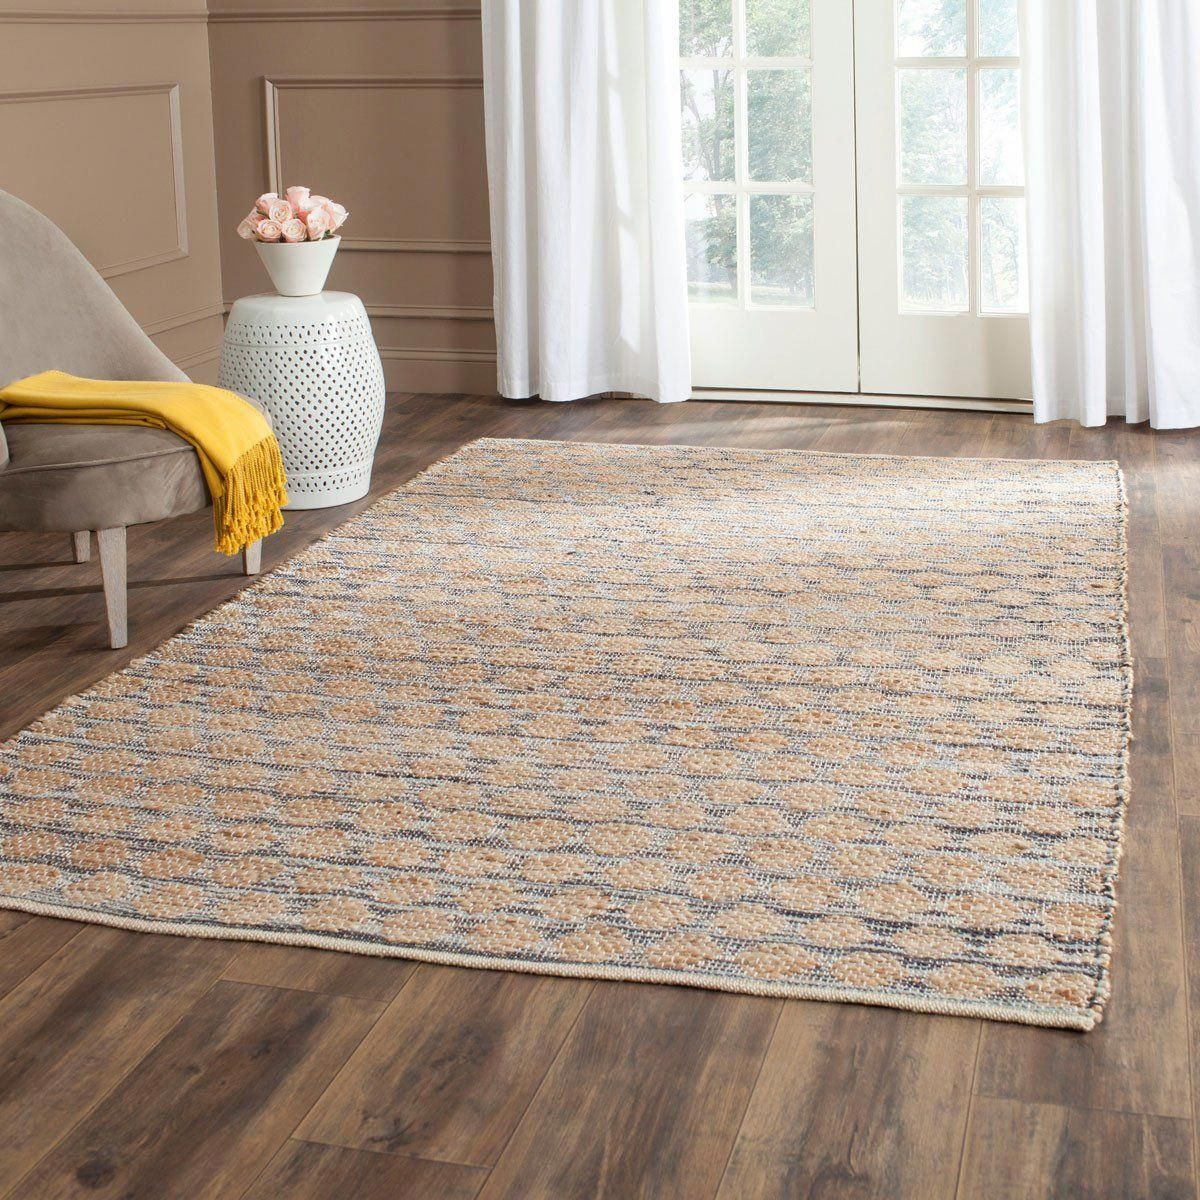 Best Carpet Runners By The Foot Lowes Id 3346680894 400 x 300